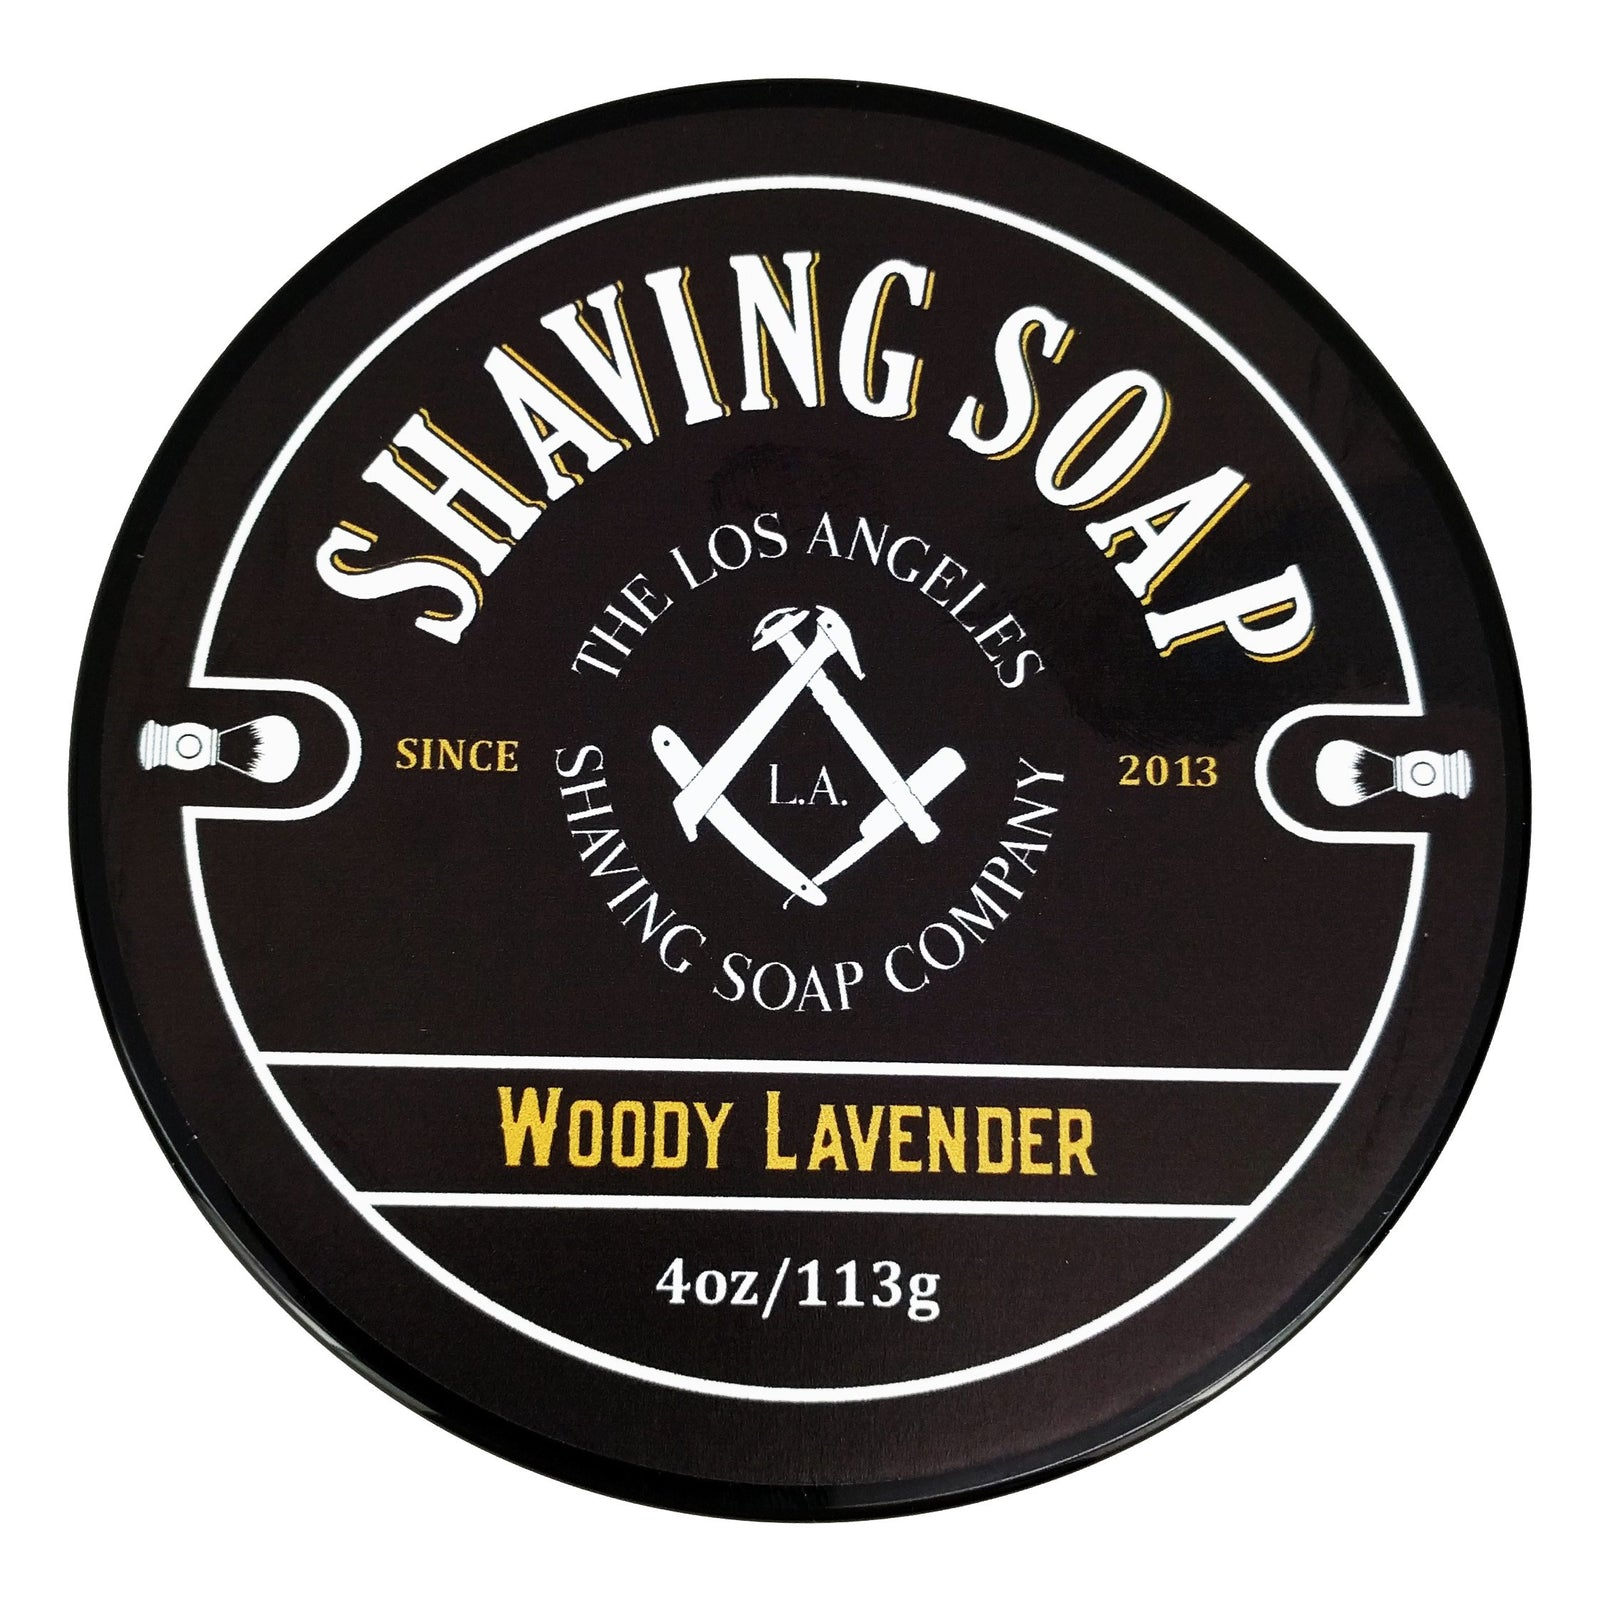 LA Shaving Soap Co. - Woody Lavender Shaving Soap